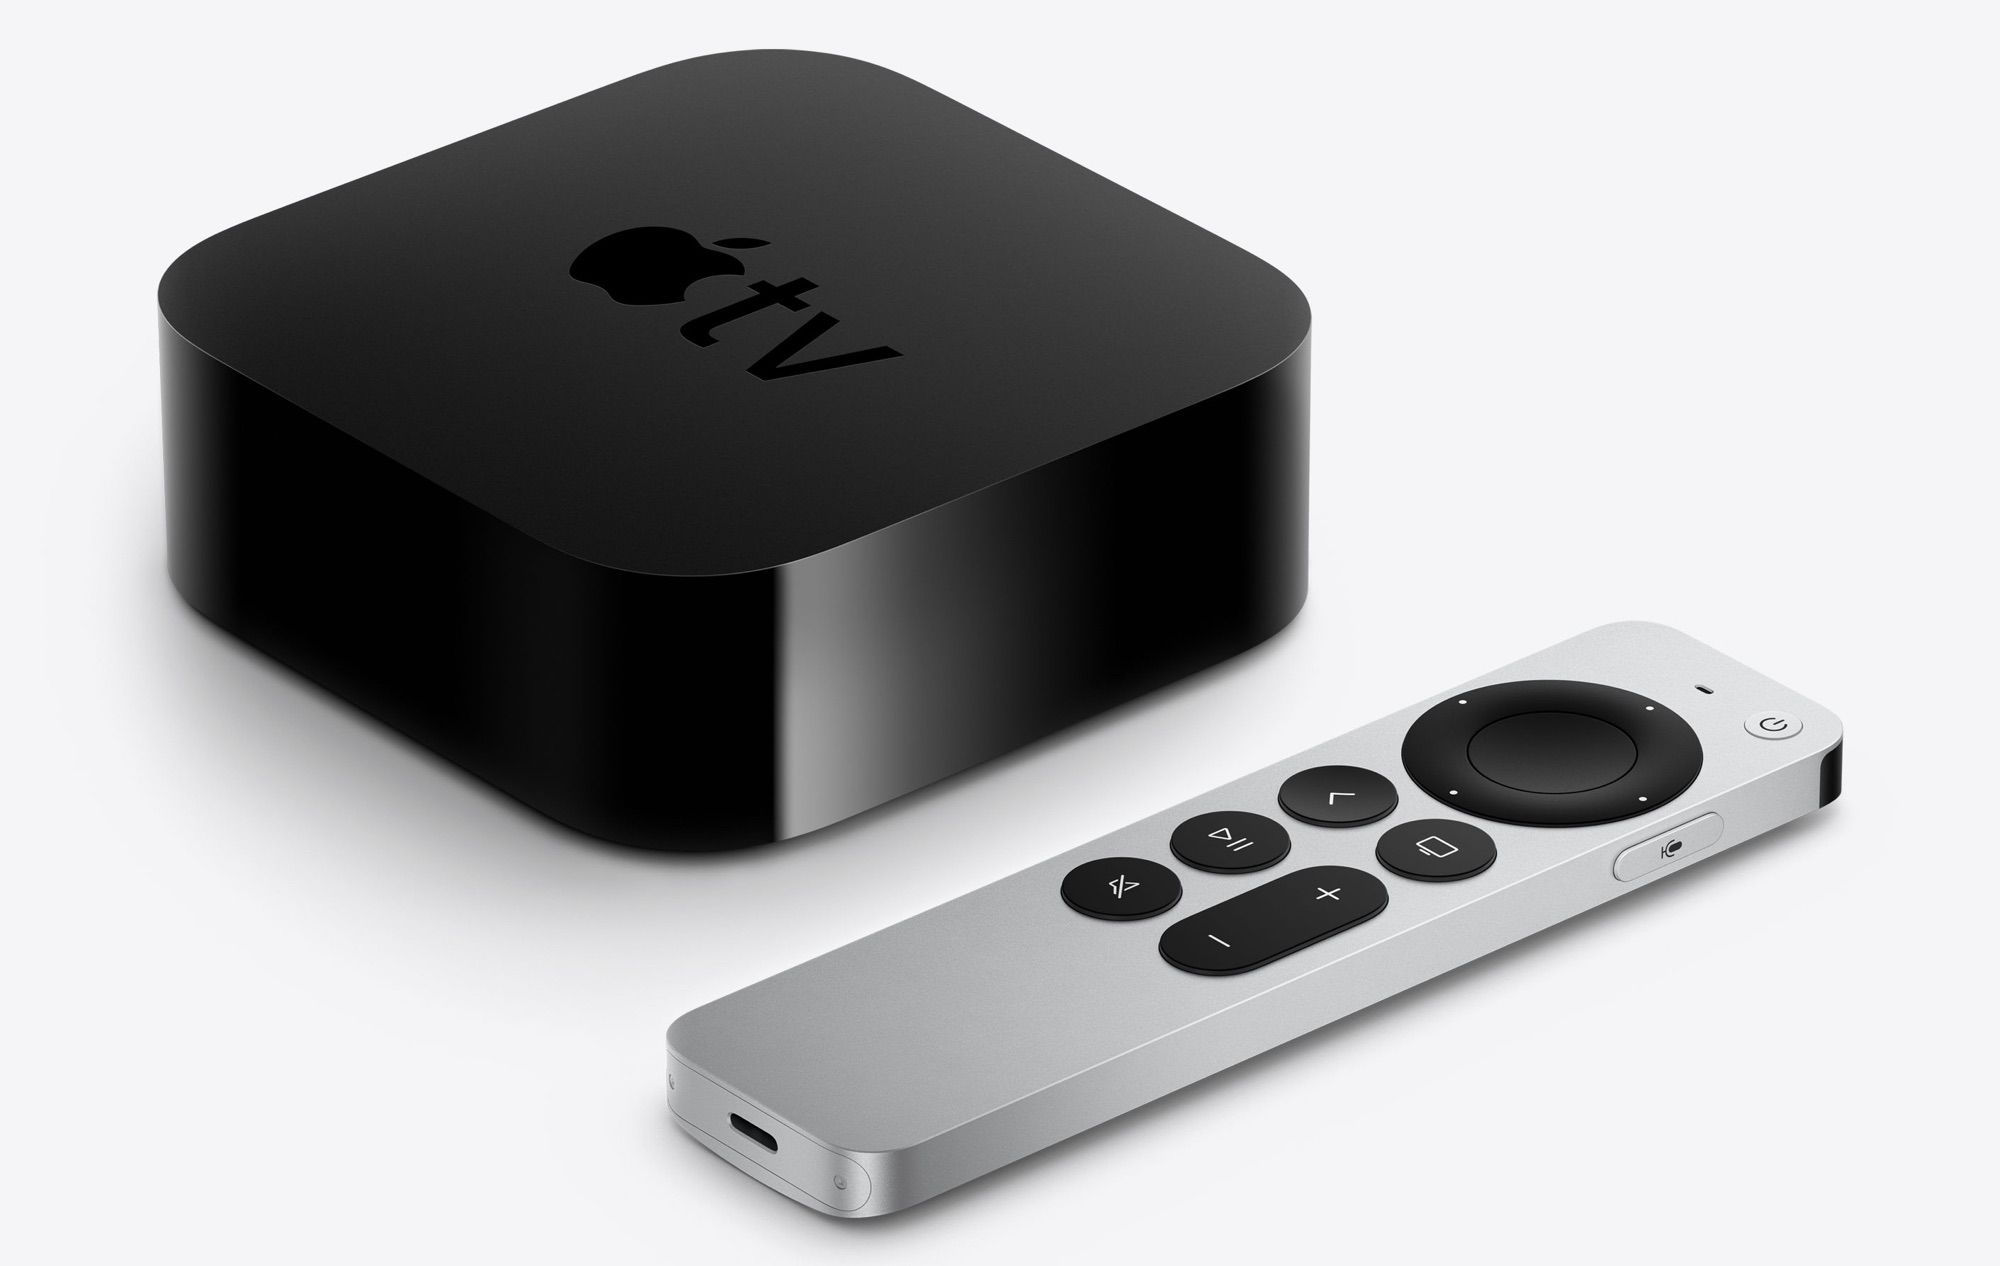 New Siri Remote Lacks Accelerometer and Gyroscope for Gaming on Apple TV - MacRumors